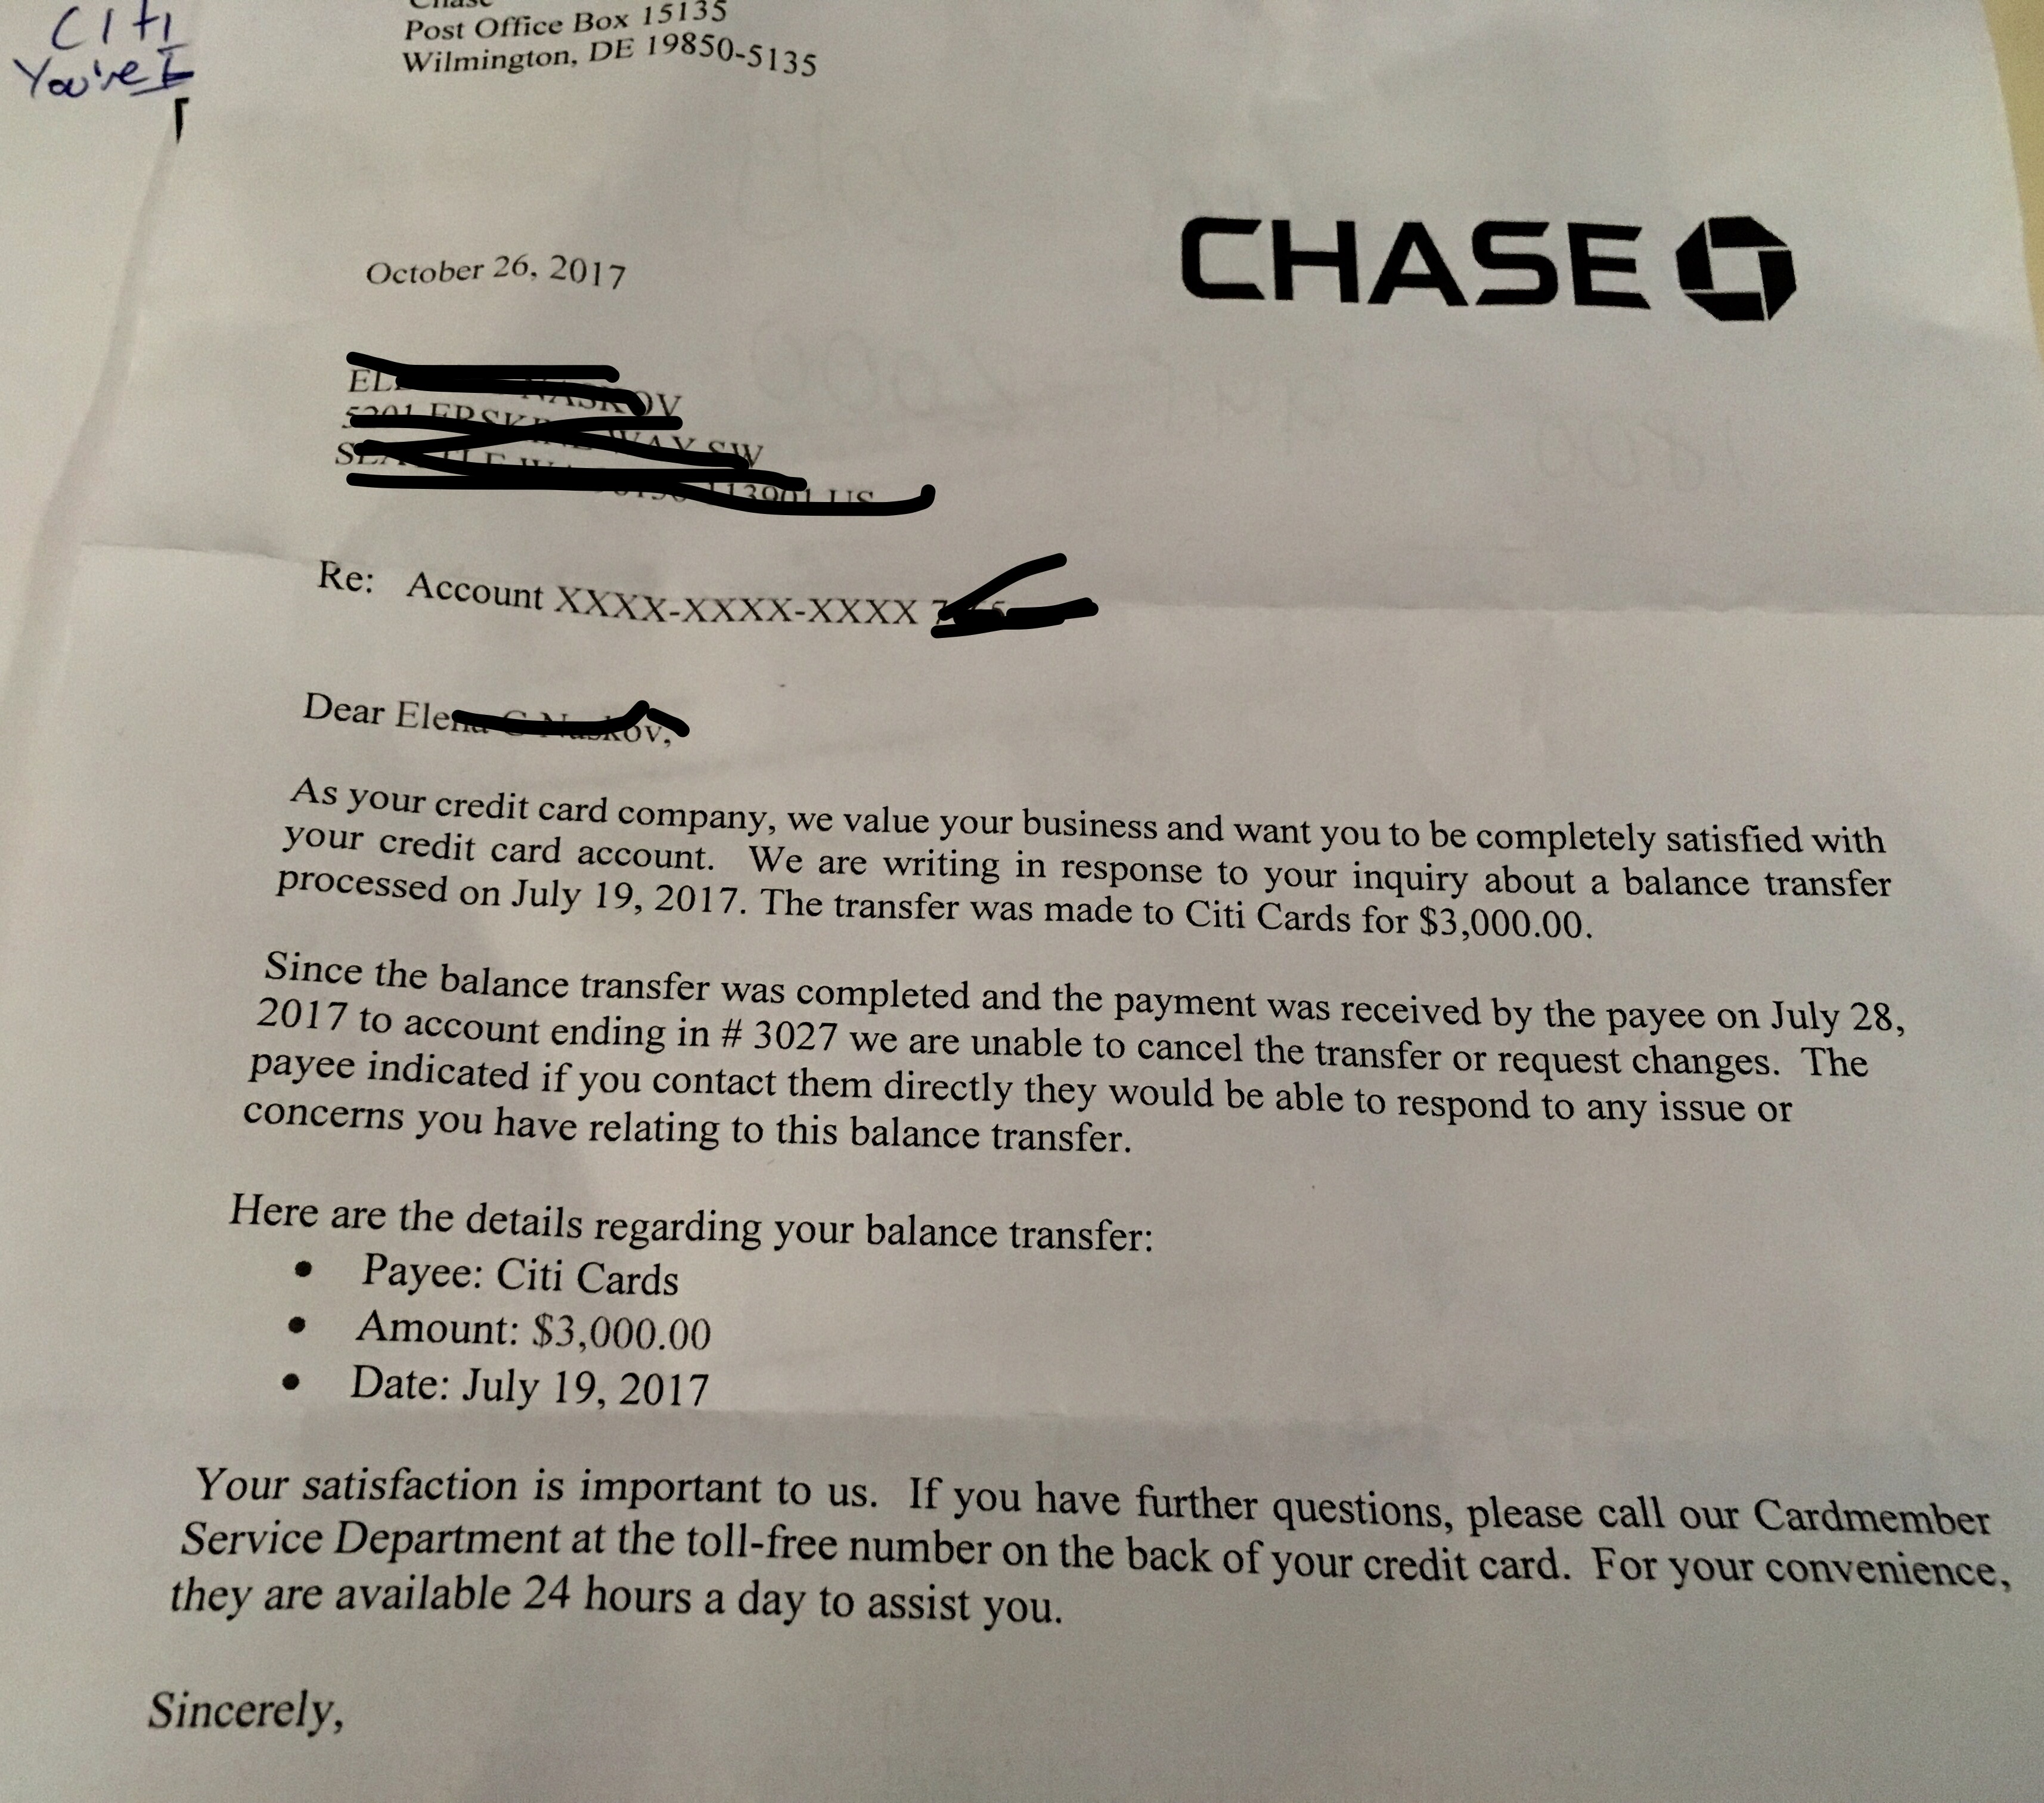 Chase Bank Customer Service Complaints Department | HissingKitty com